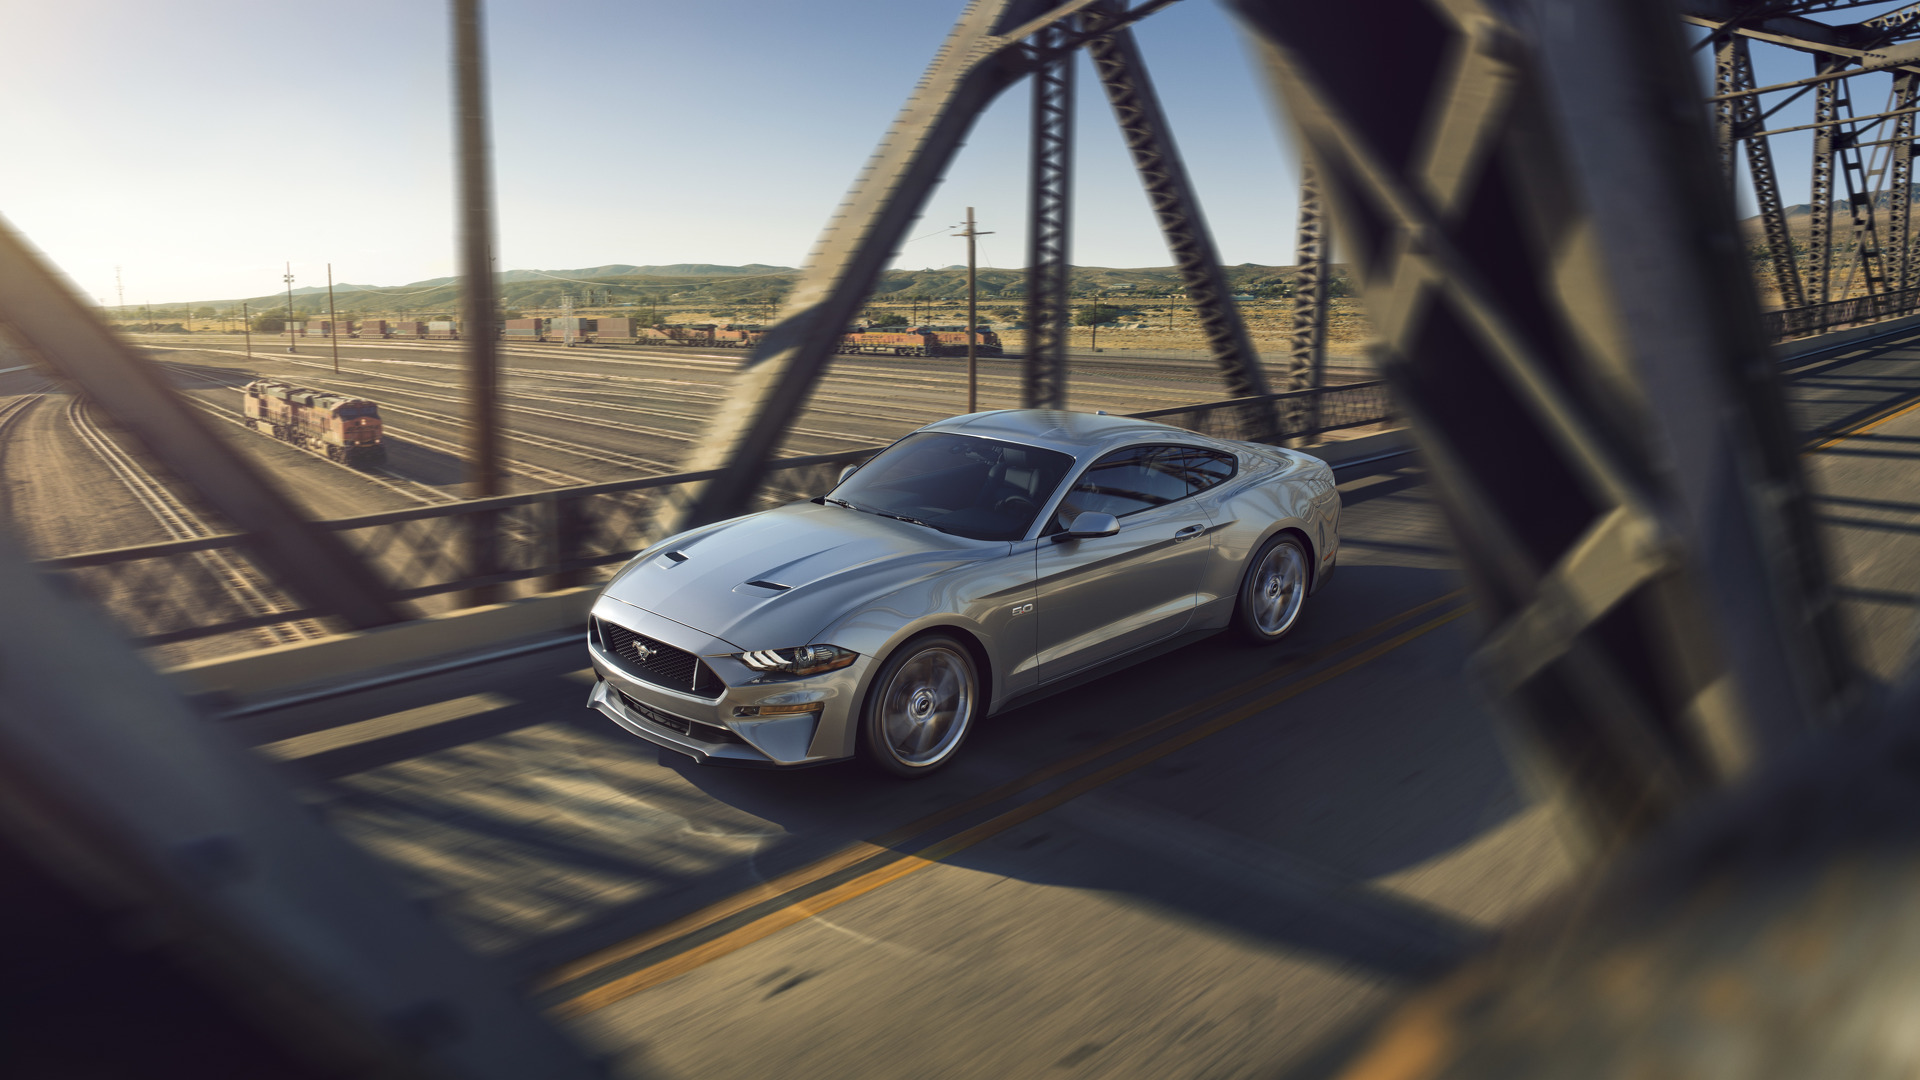 2018 ford mustang facelift see the changes side by side